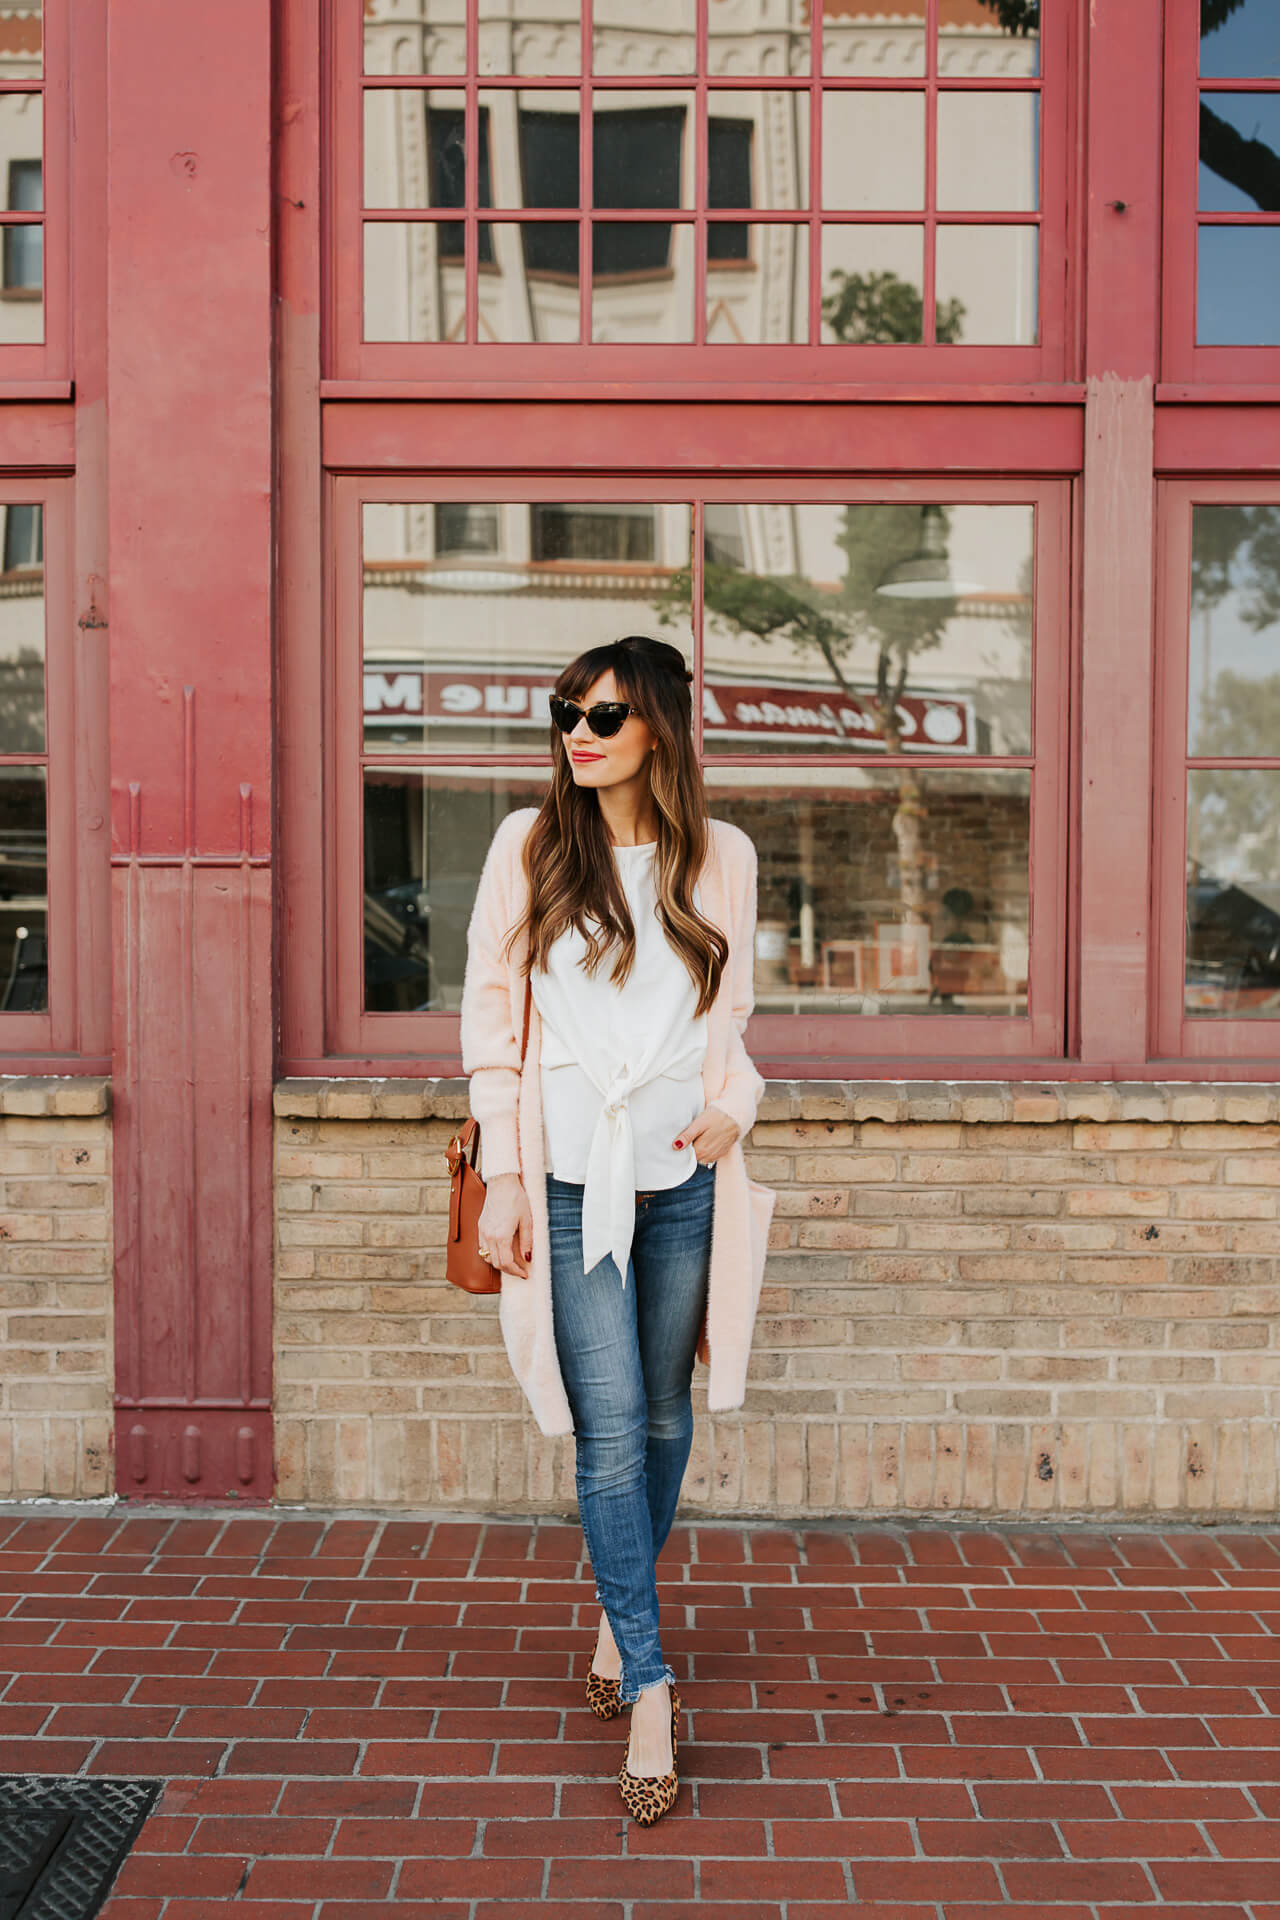 These Madewell high rise jeans are so comfy! - M Loves M @marmar